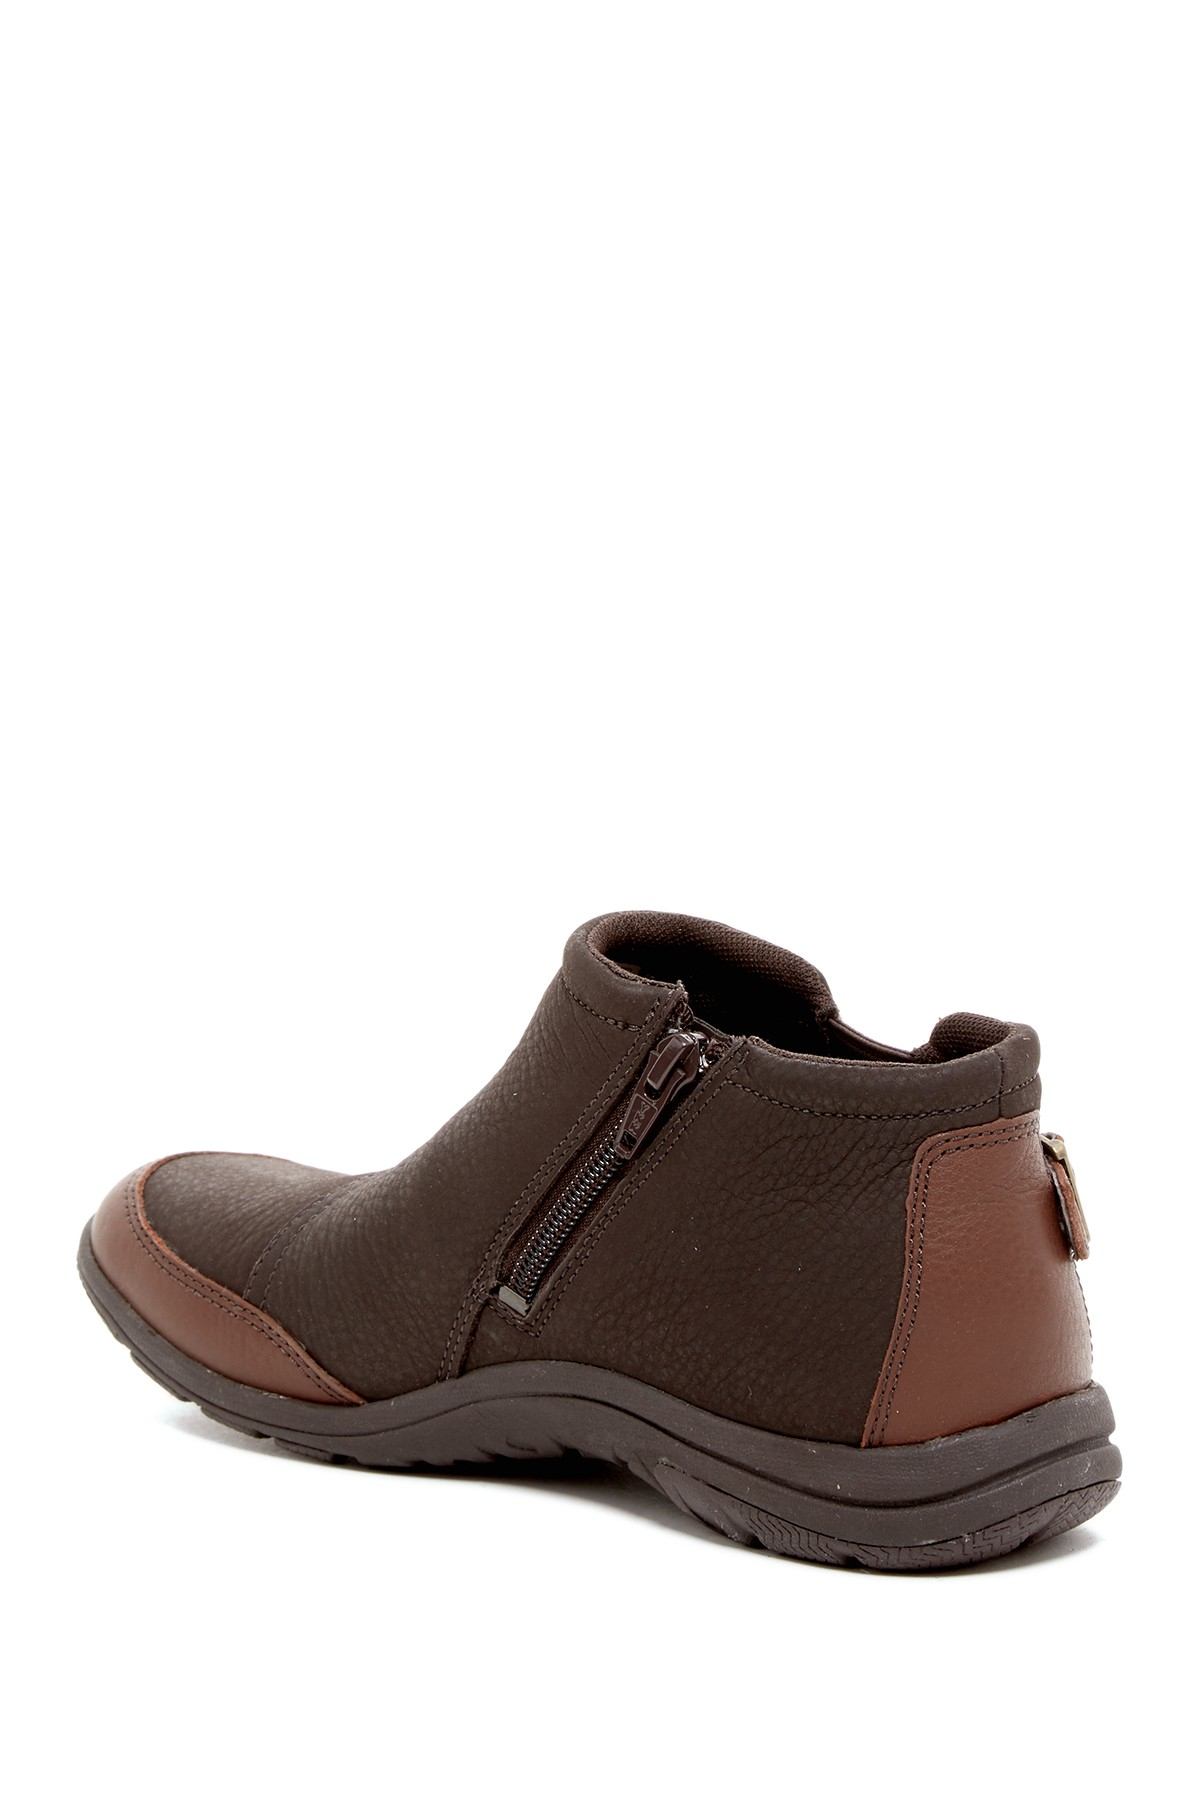 Lyst Merrell Dassie Ankle Boot In Brown